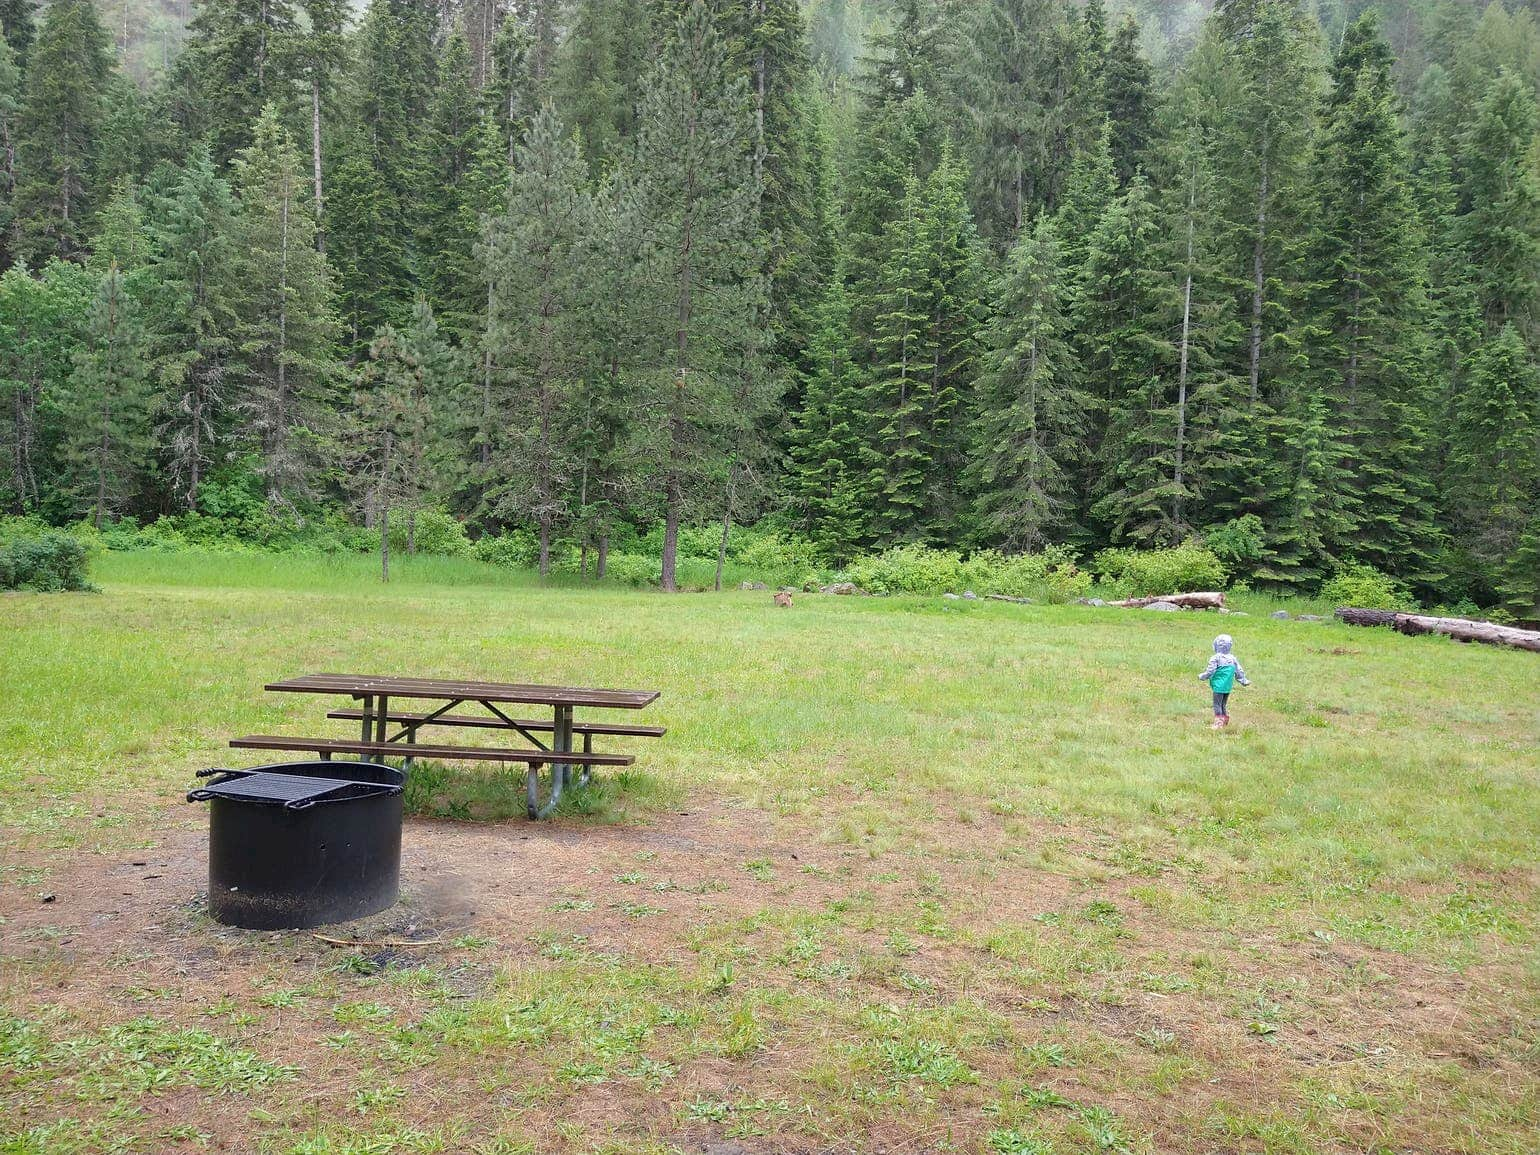 Campground in a field beside an evergreen forest with a picnic table and fire pit.